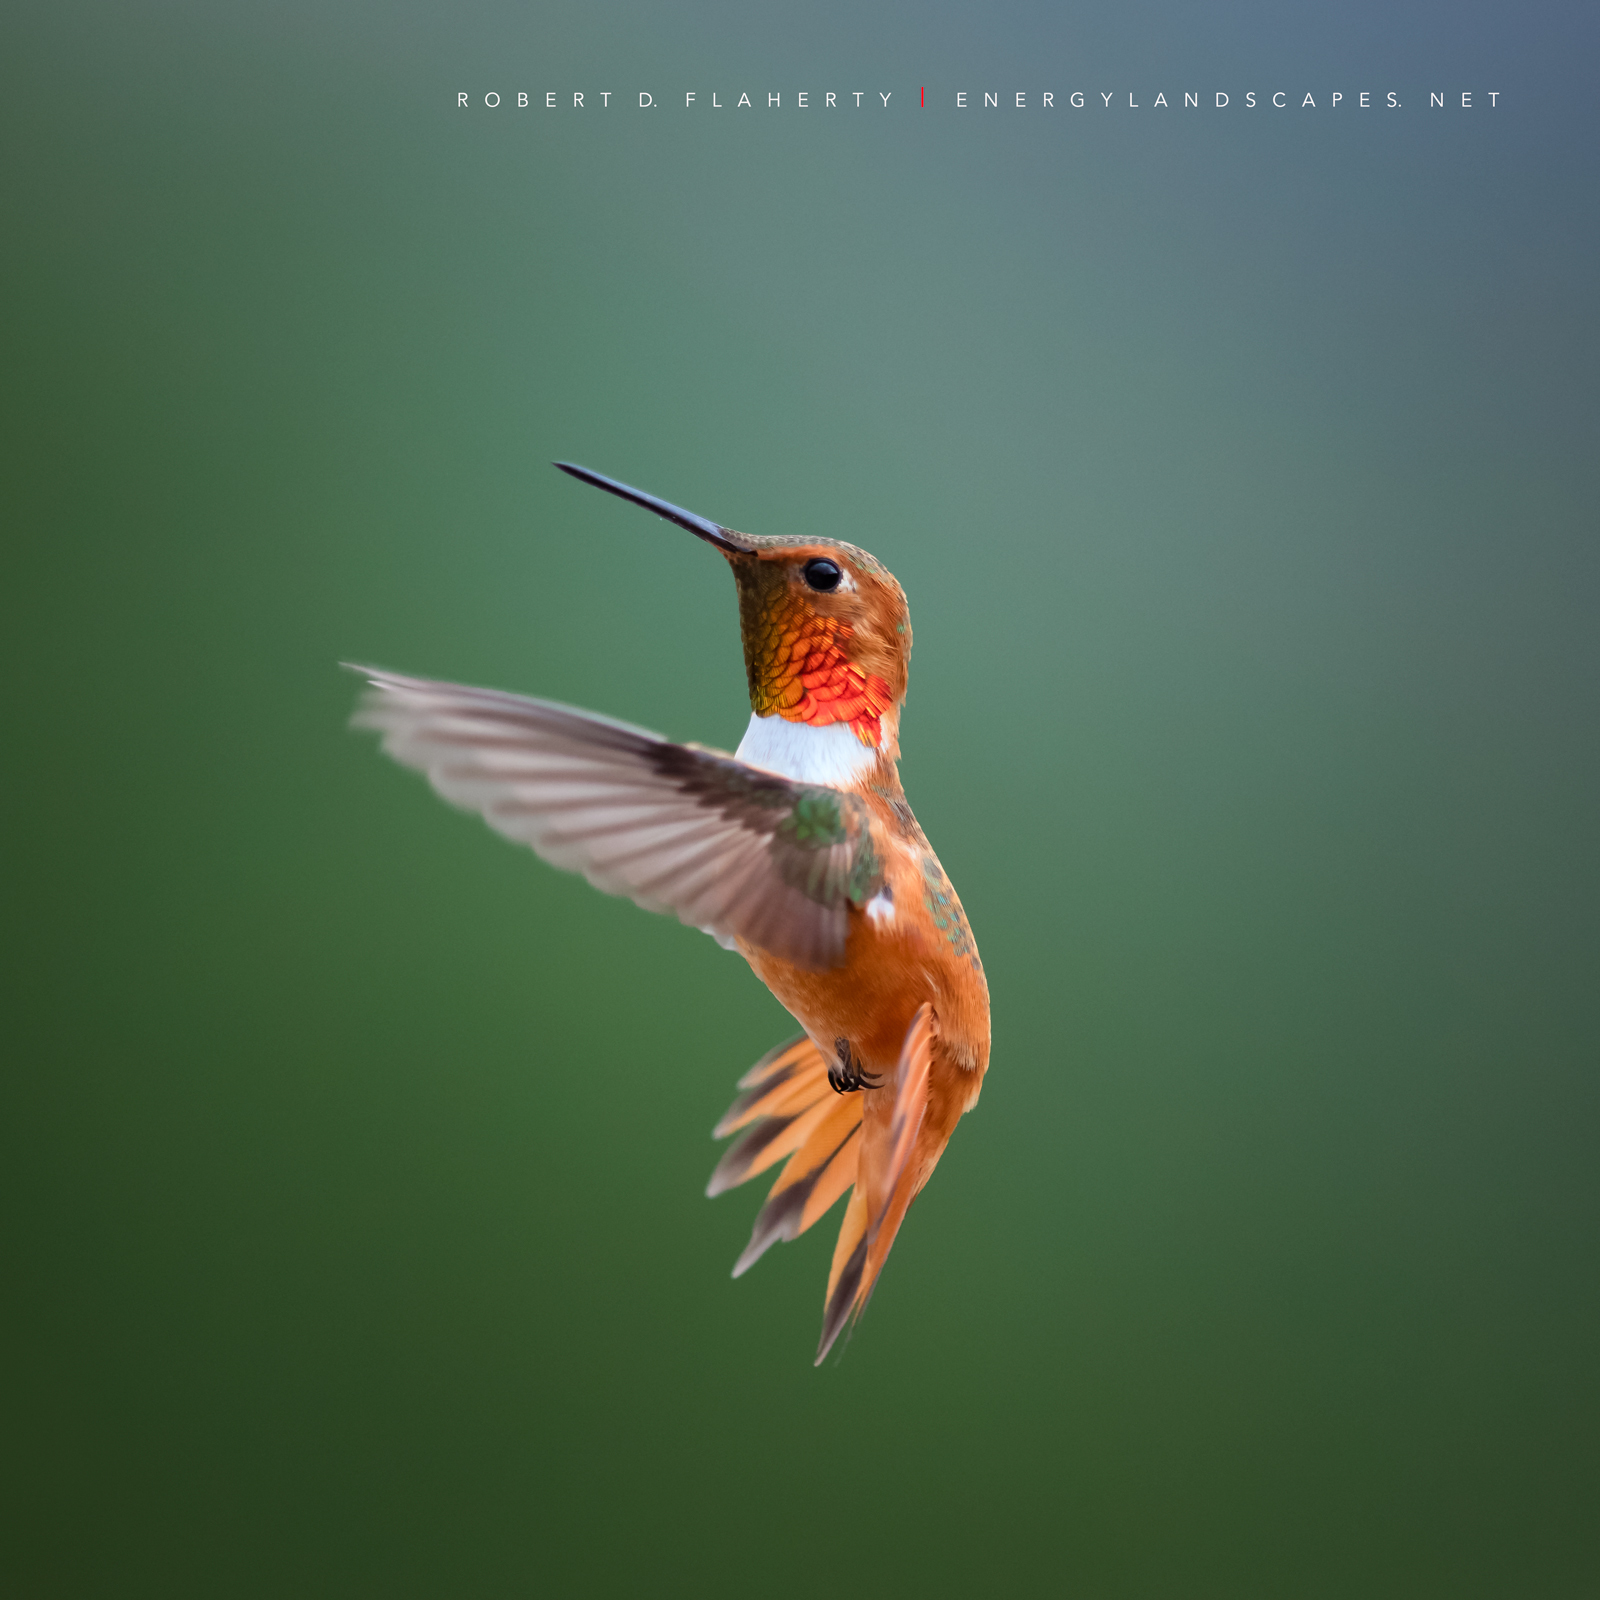 Rufous In Detail was photographed at my home overlooking Ruidoso New Mexico.  The image is part of a project photographing the...